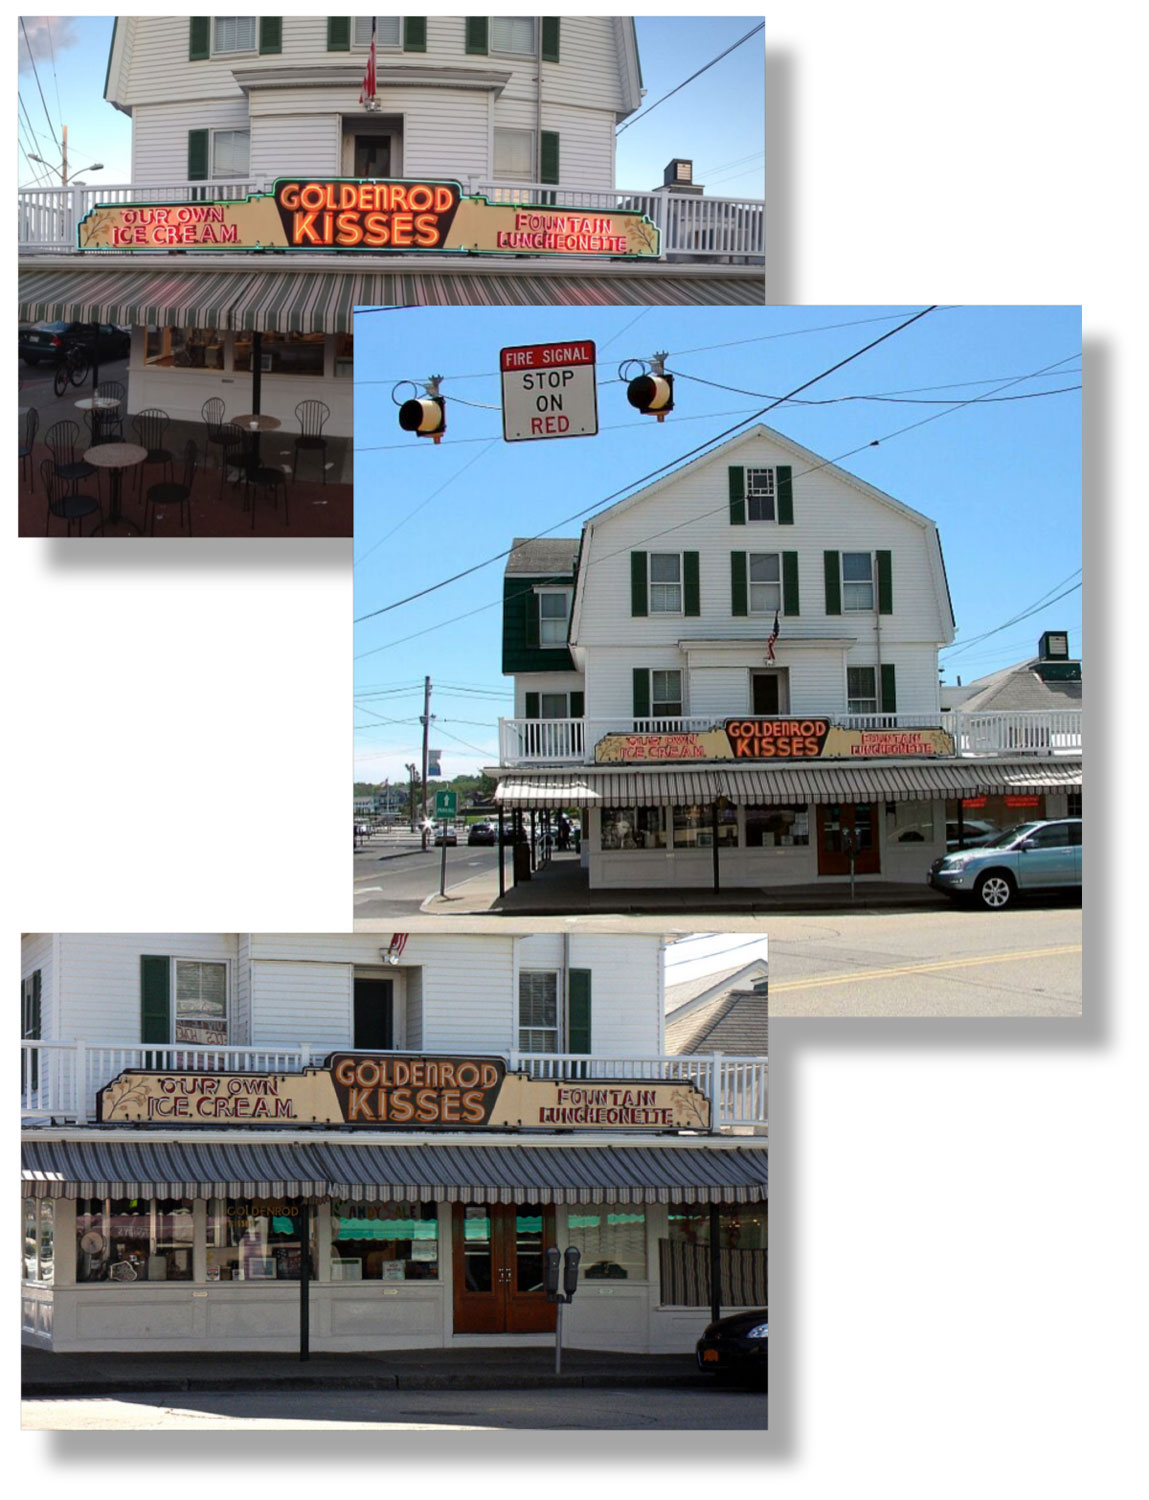 The client commissioned a painting of The Goldenrod building and their famous taffy machine in the window. These are some of the photos provided.